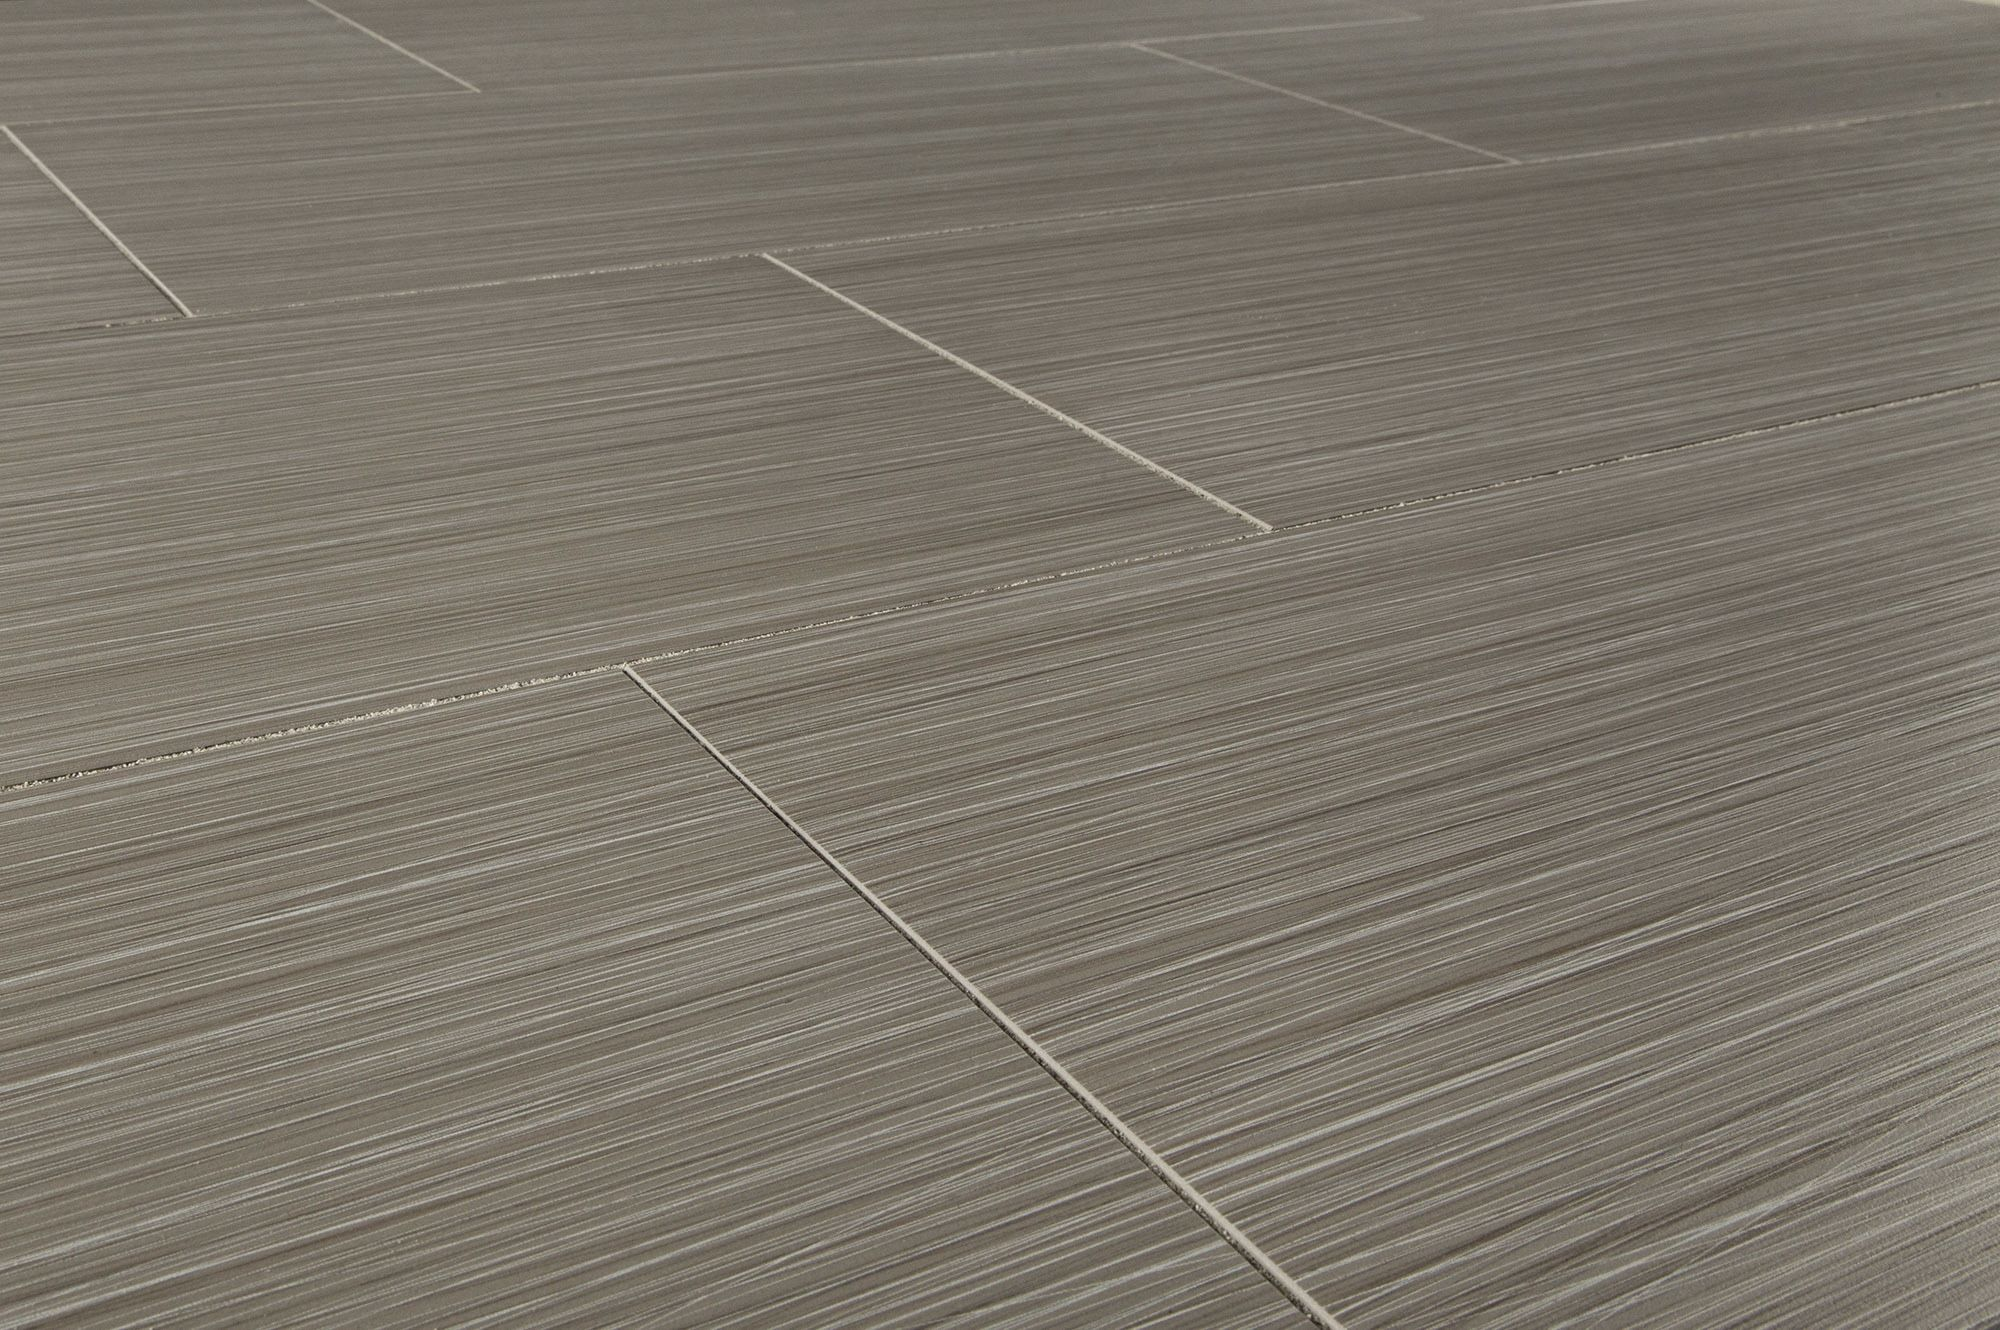 Porcelain Tile - Raw Silk Series | Master bath | Pinterest